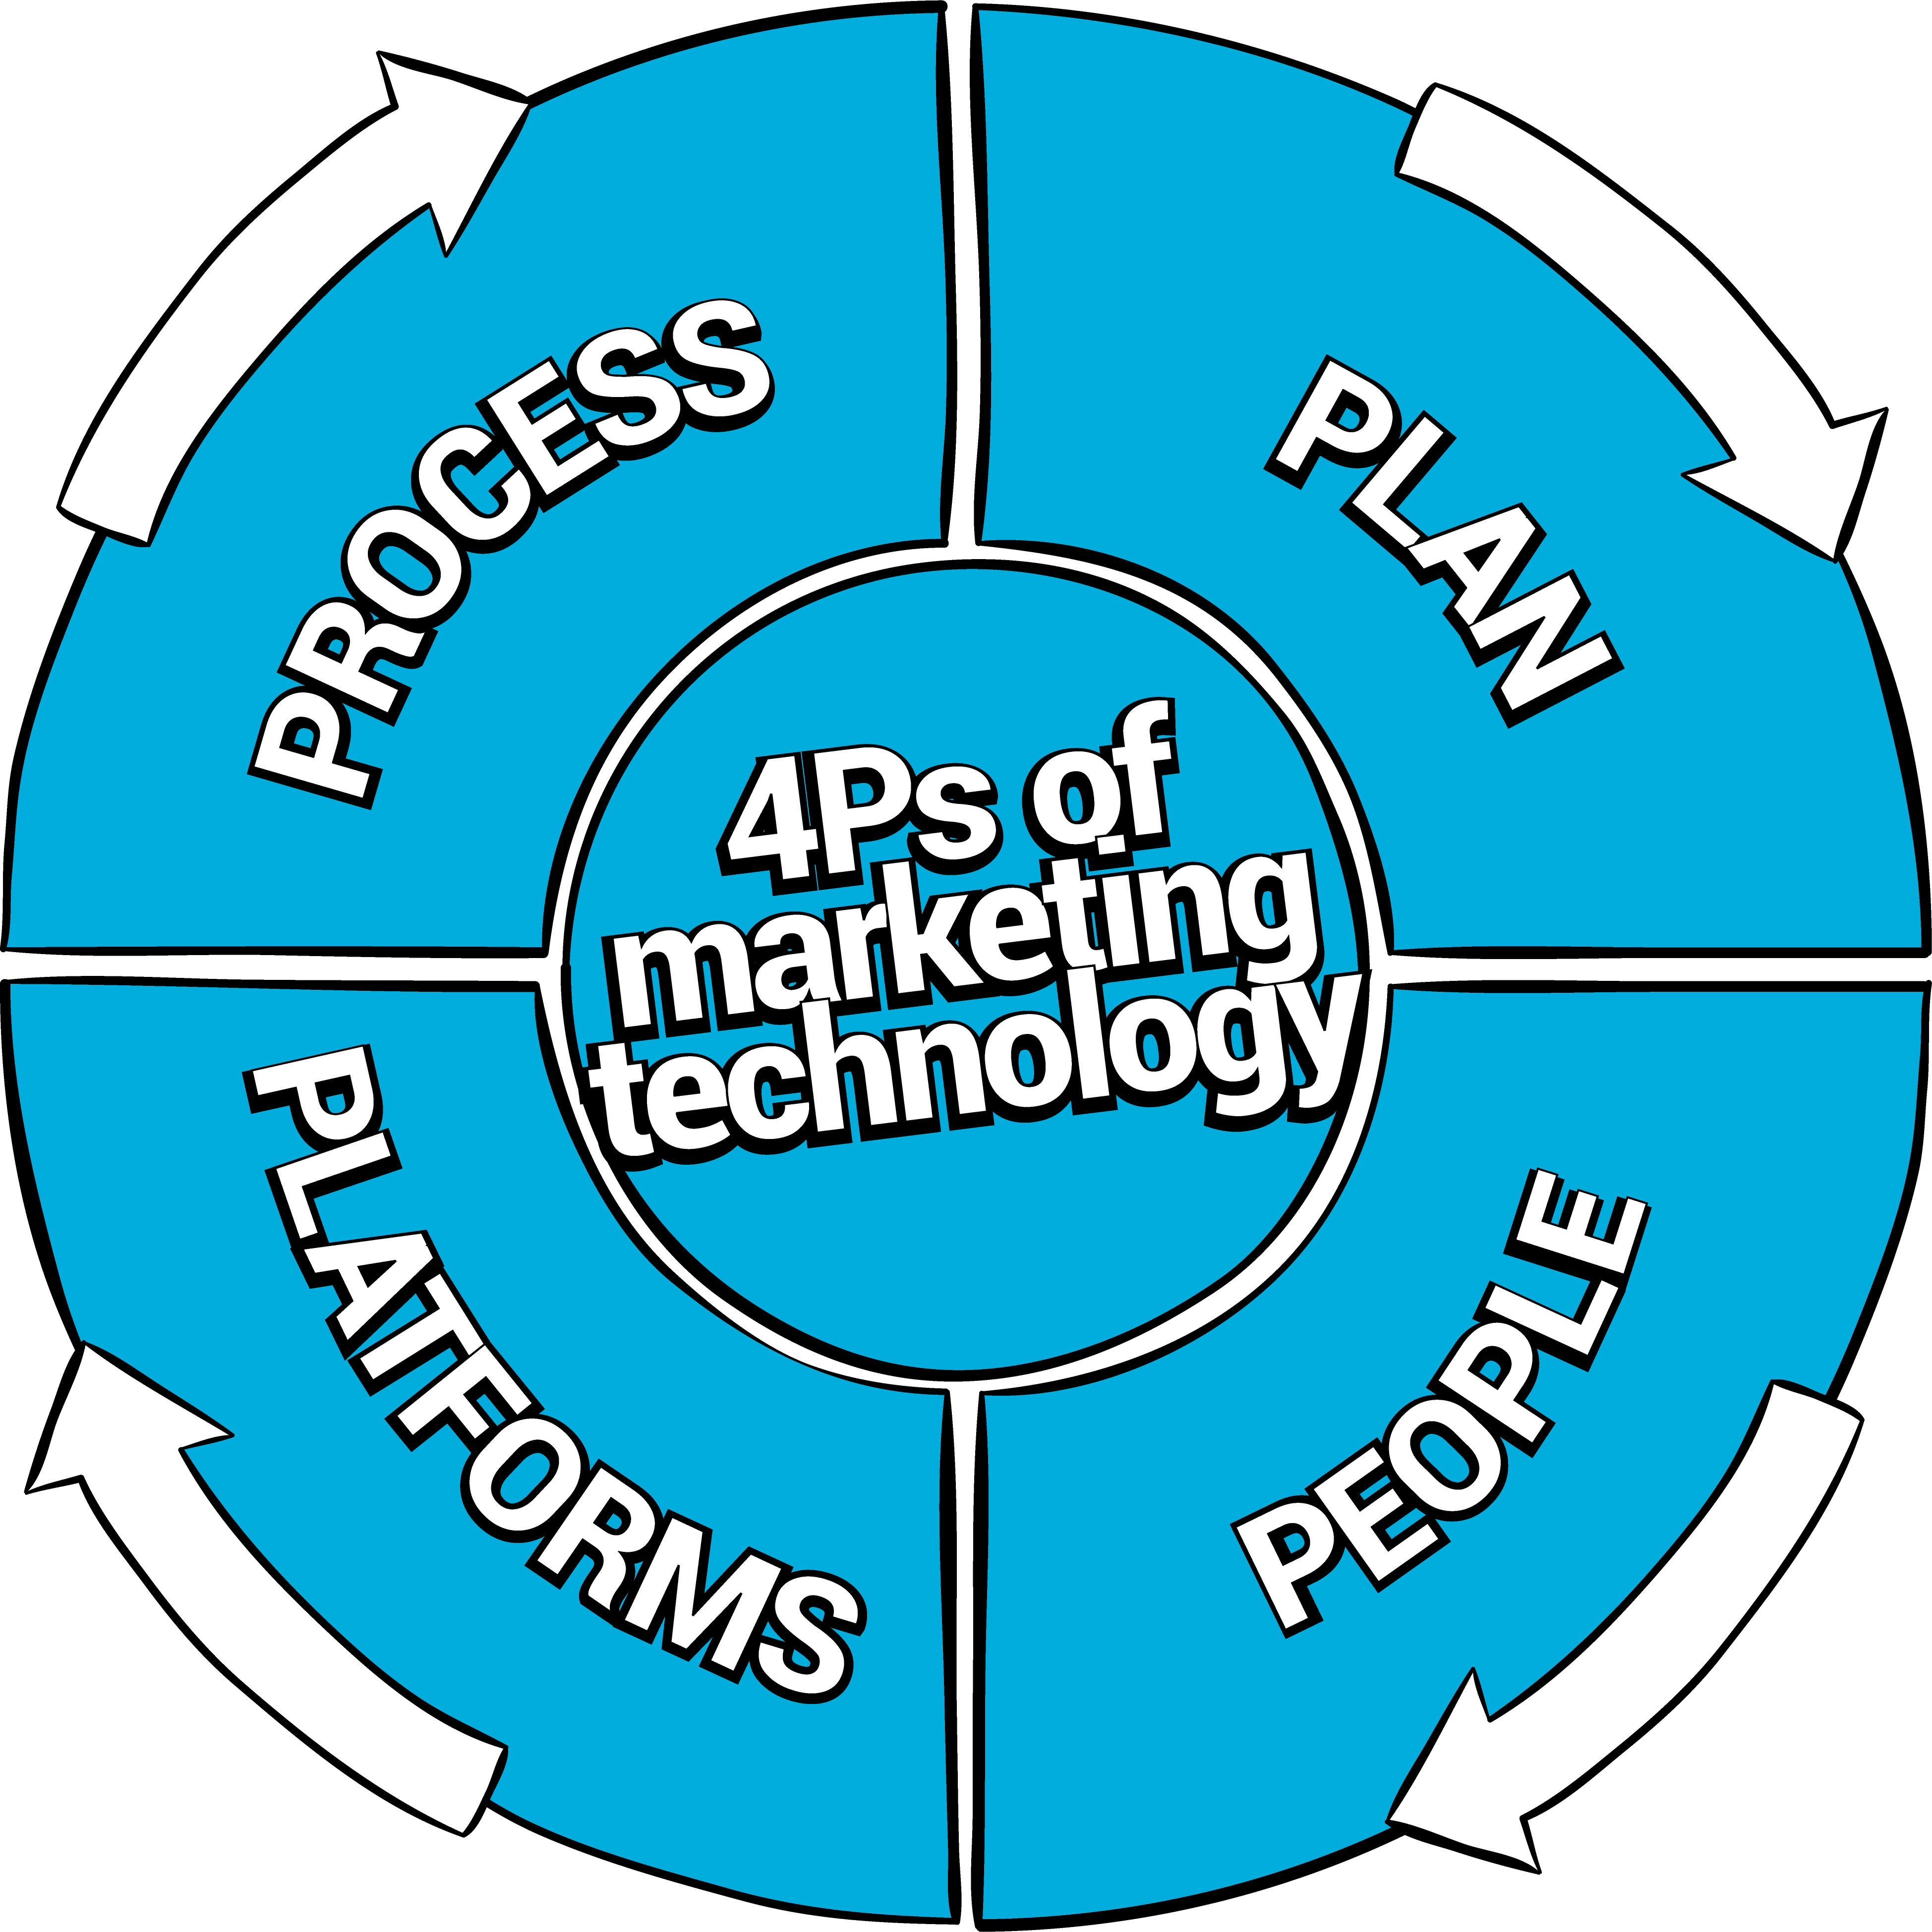 4Ps of Marketing Technology diagram